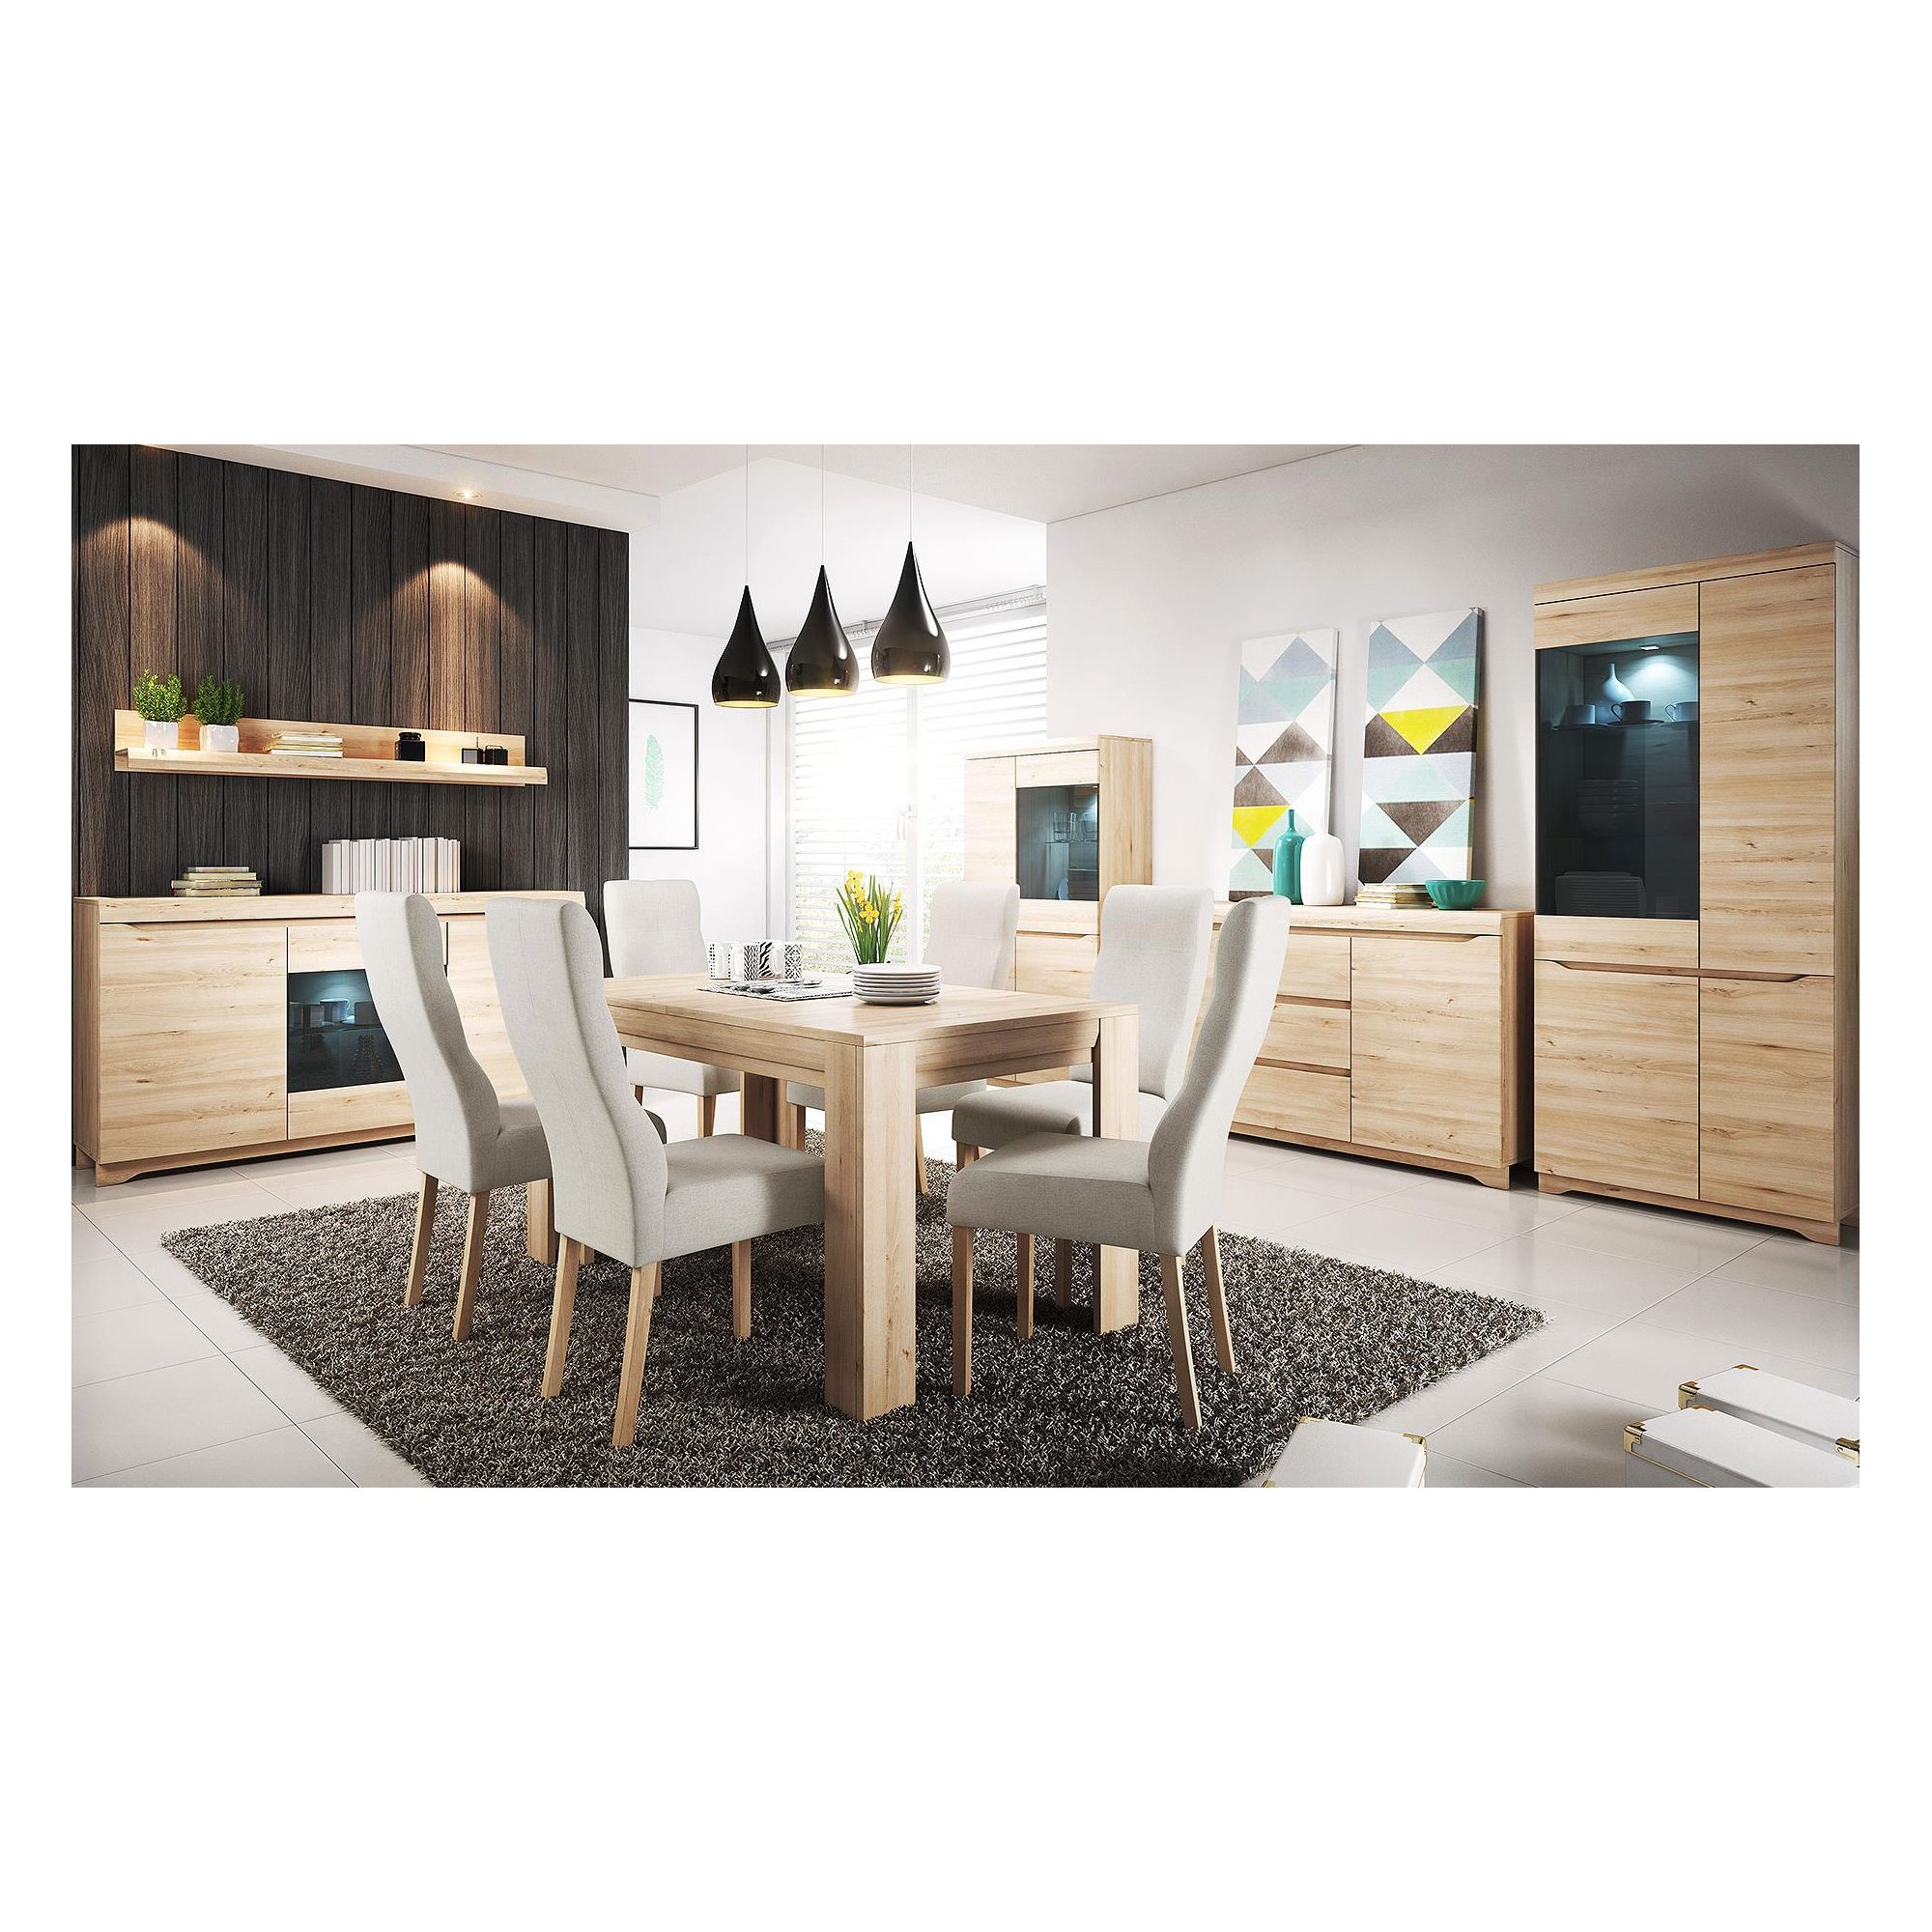 beech dining room furniture | Dining room furniture in beech color - Almond Furniture